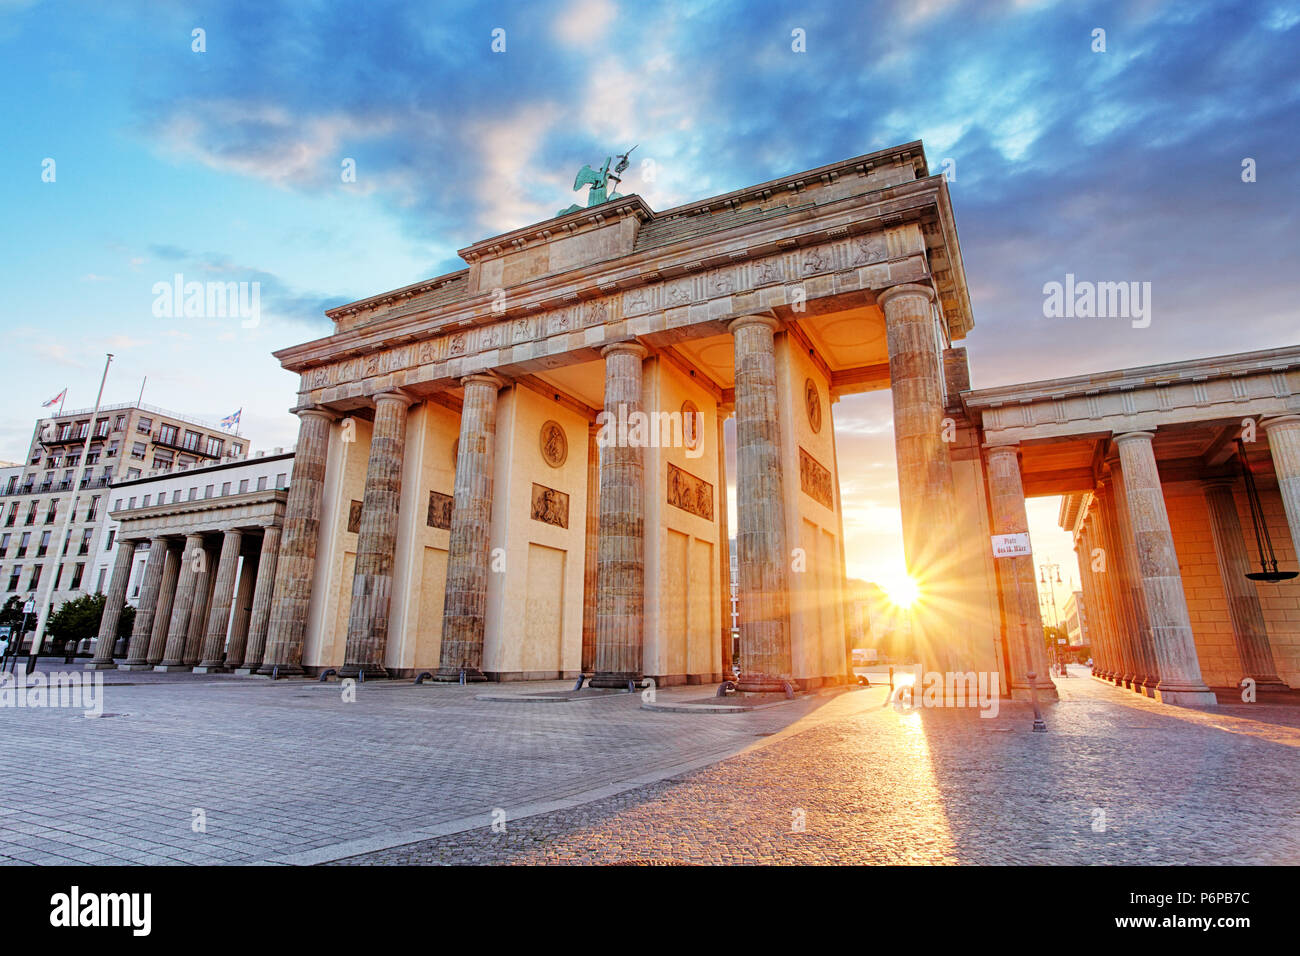 Berlin, Porte de Brandebourg, Allemagne Photo Stock